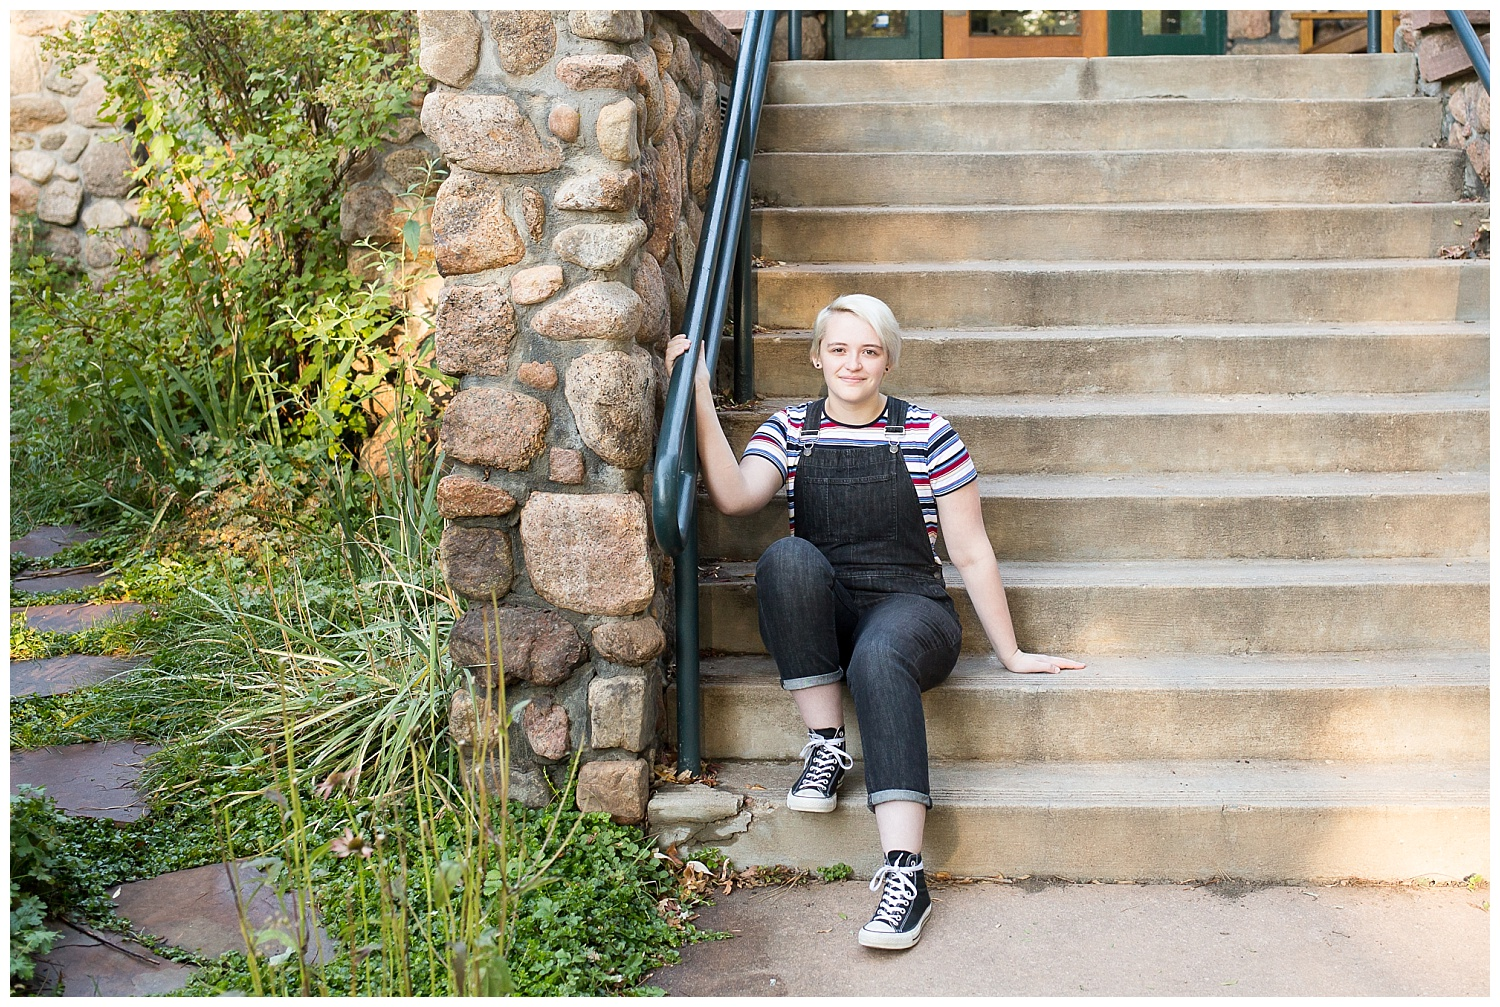 Colorado Springs Senior Photography | Stacy Carosa Photography | Colorado Springs Senior Session in Cheyenne Canyon sitting with smile